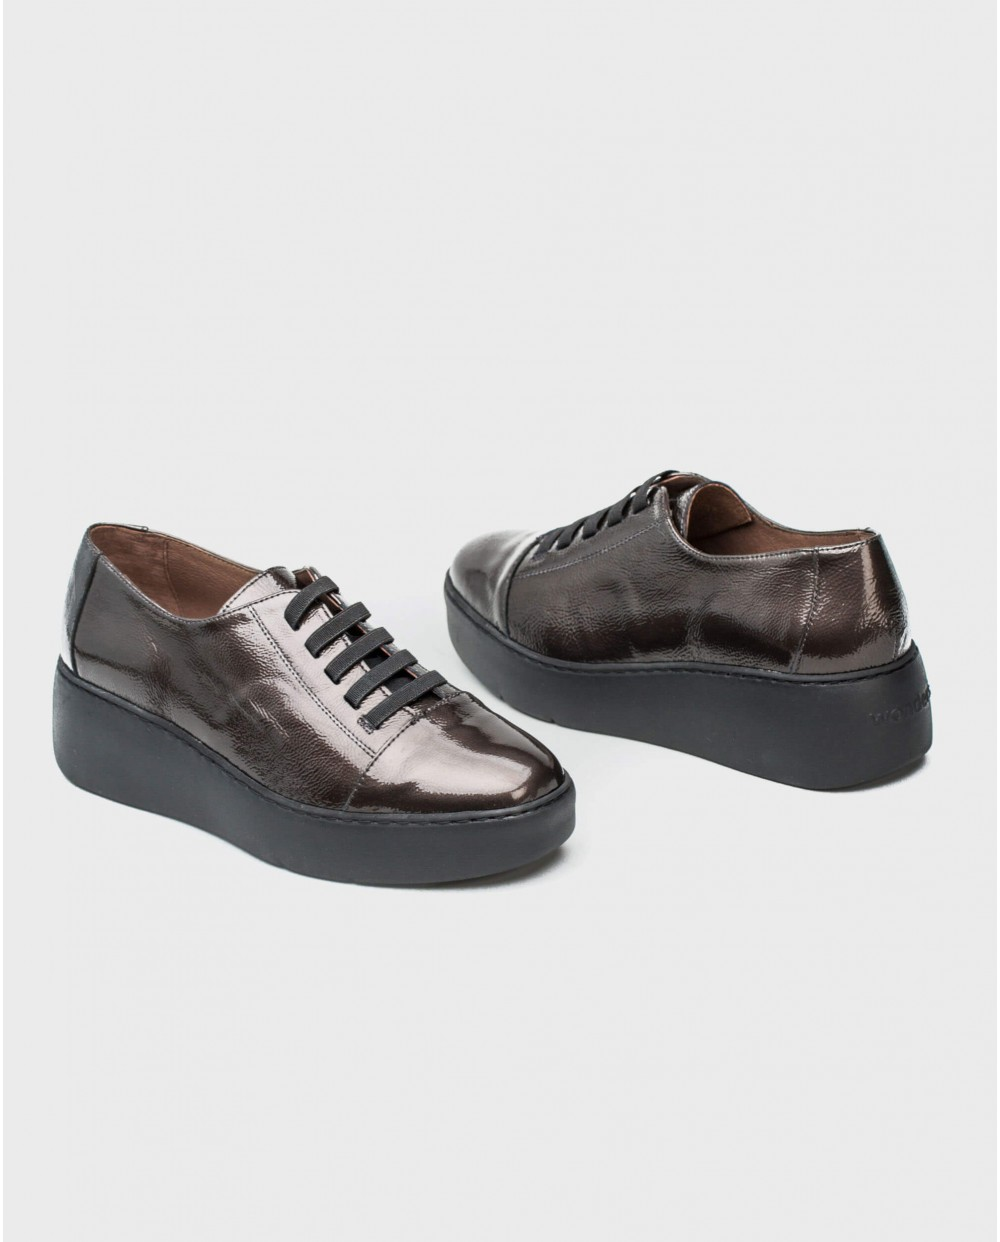 Wonders-Sneakers-Leather sneakers with elastic fastener